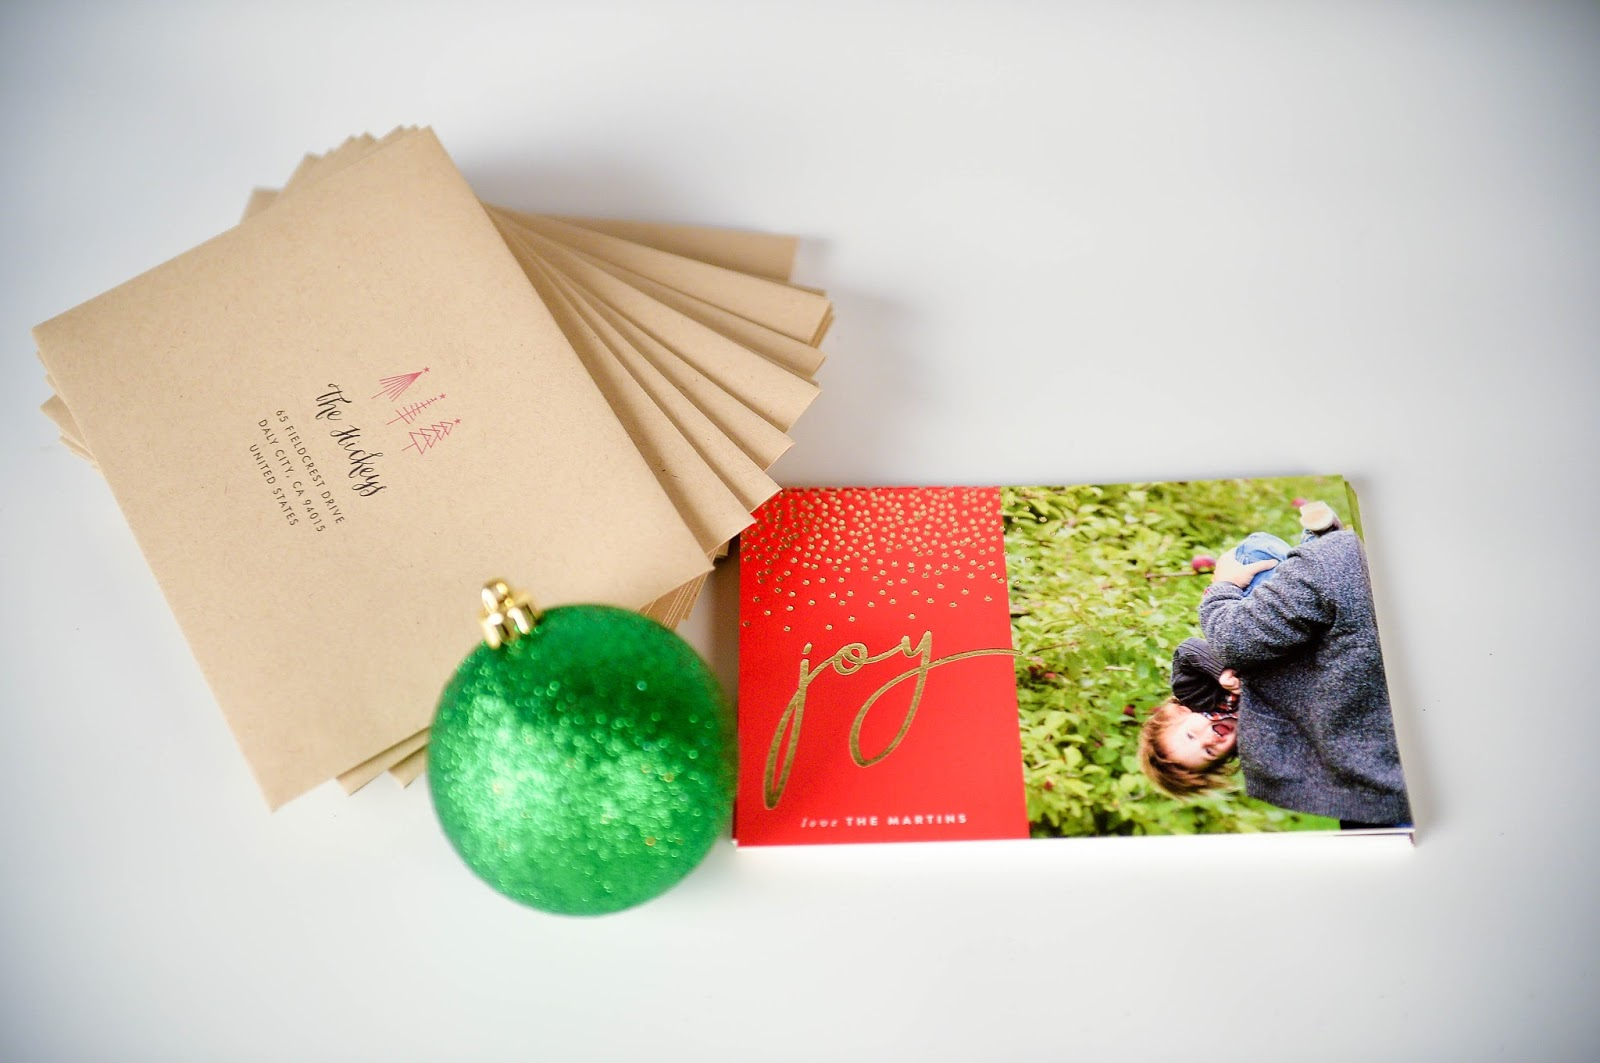 Minted foiled pressed cards